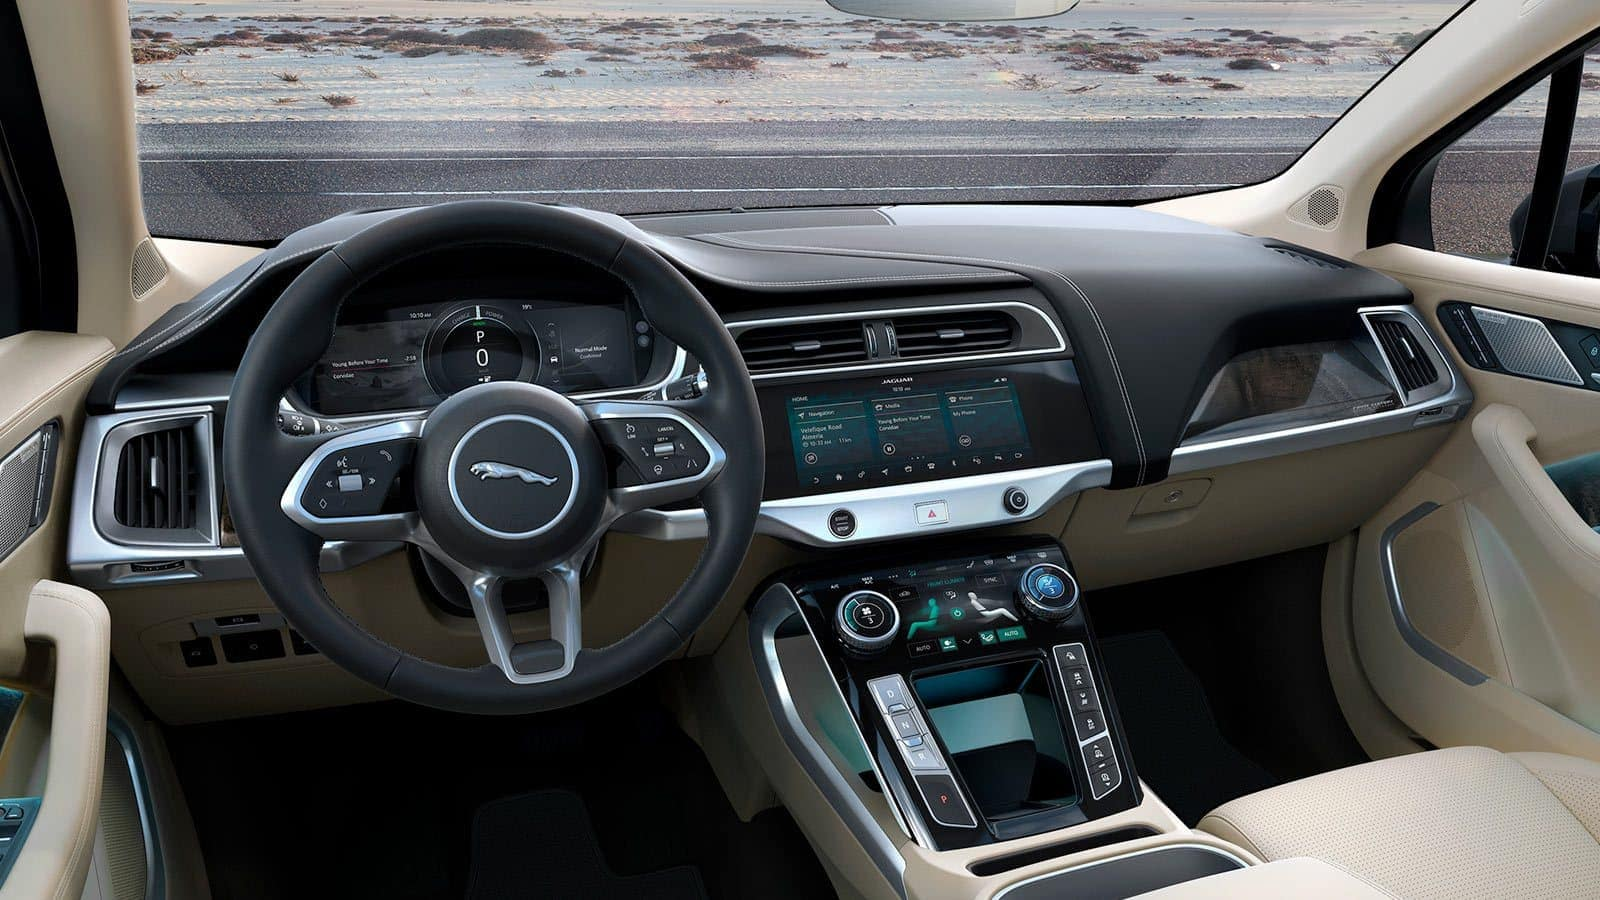 2019 Jaguar I-PACE interior in light tan with technology features